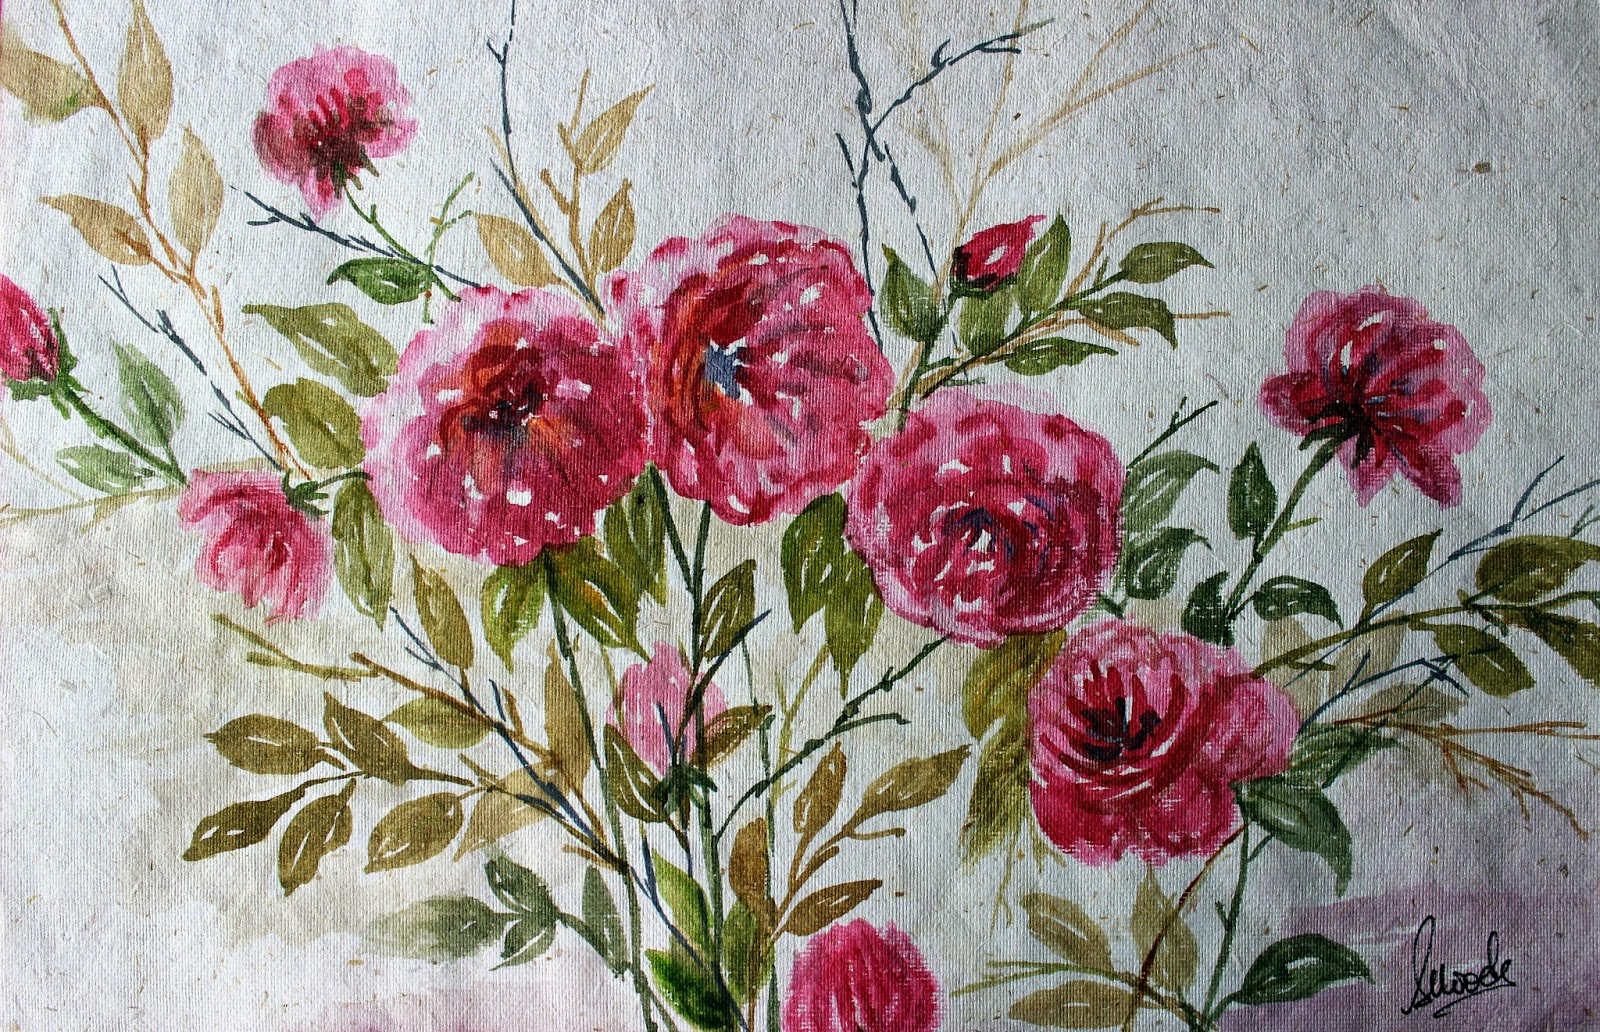 #roses #pink #buds #leaves #watercolor #garden #painting #blooming